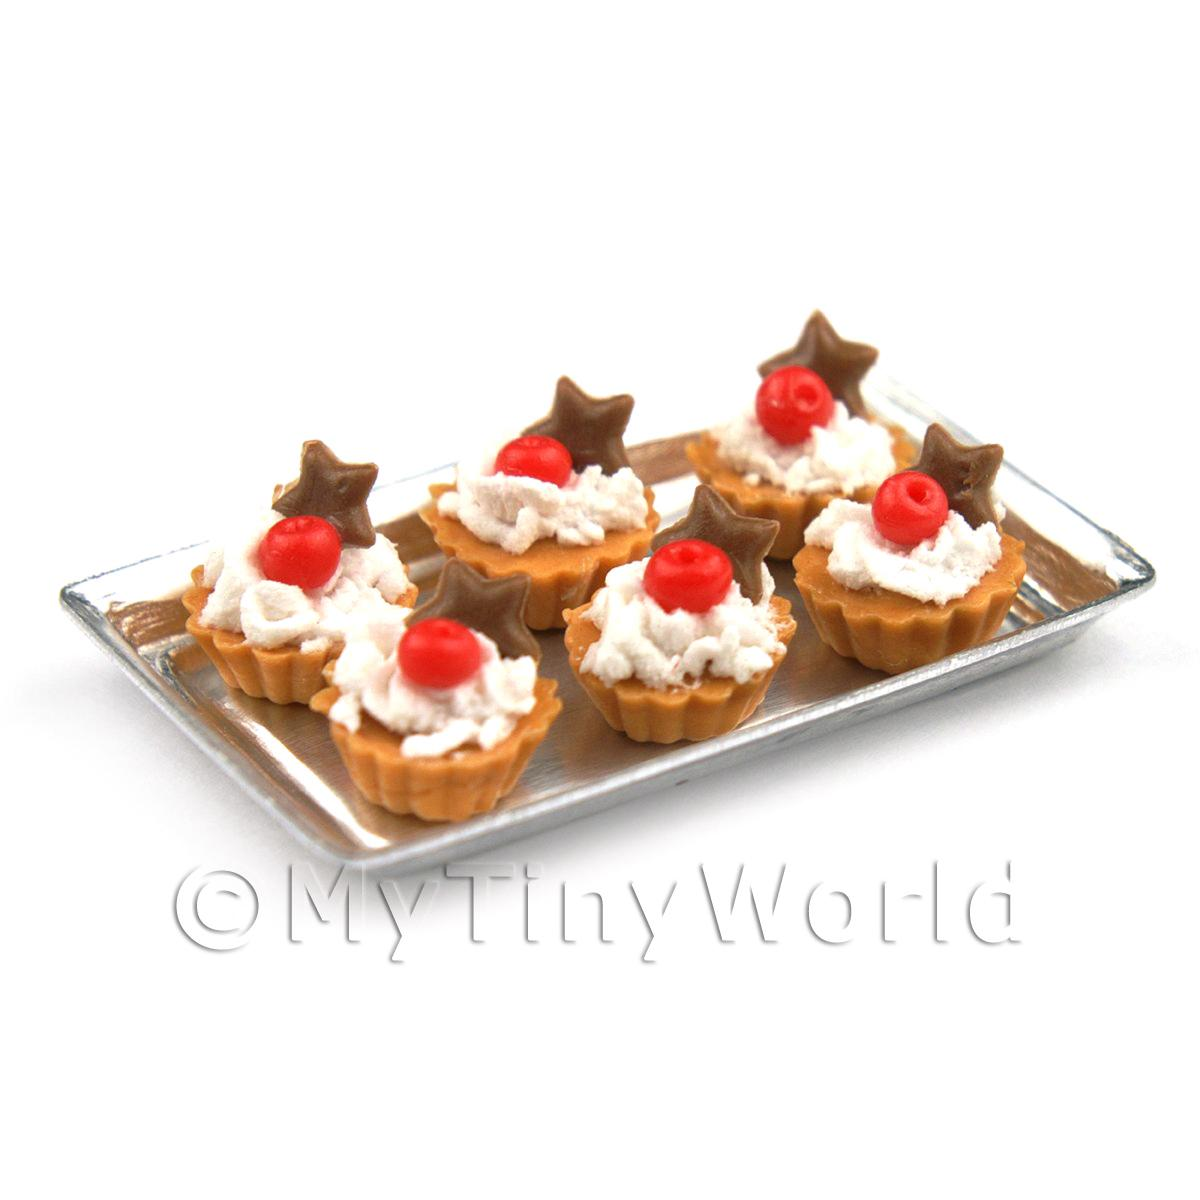 6 Loose Dolls House Miniature  Cherry and Choc Star Tarts on a Tray